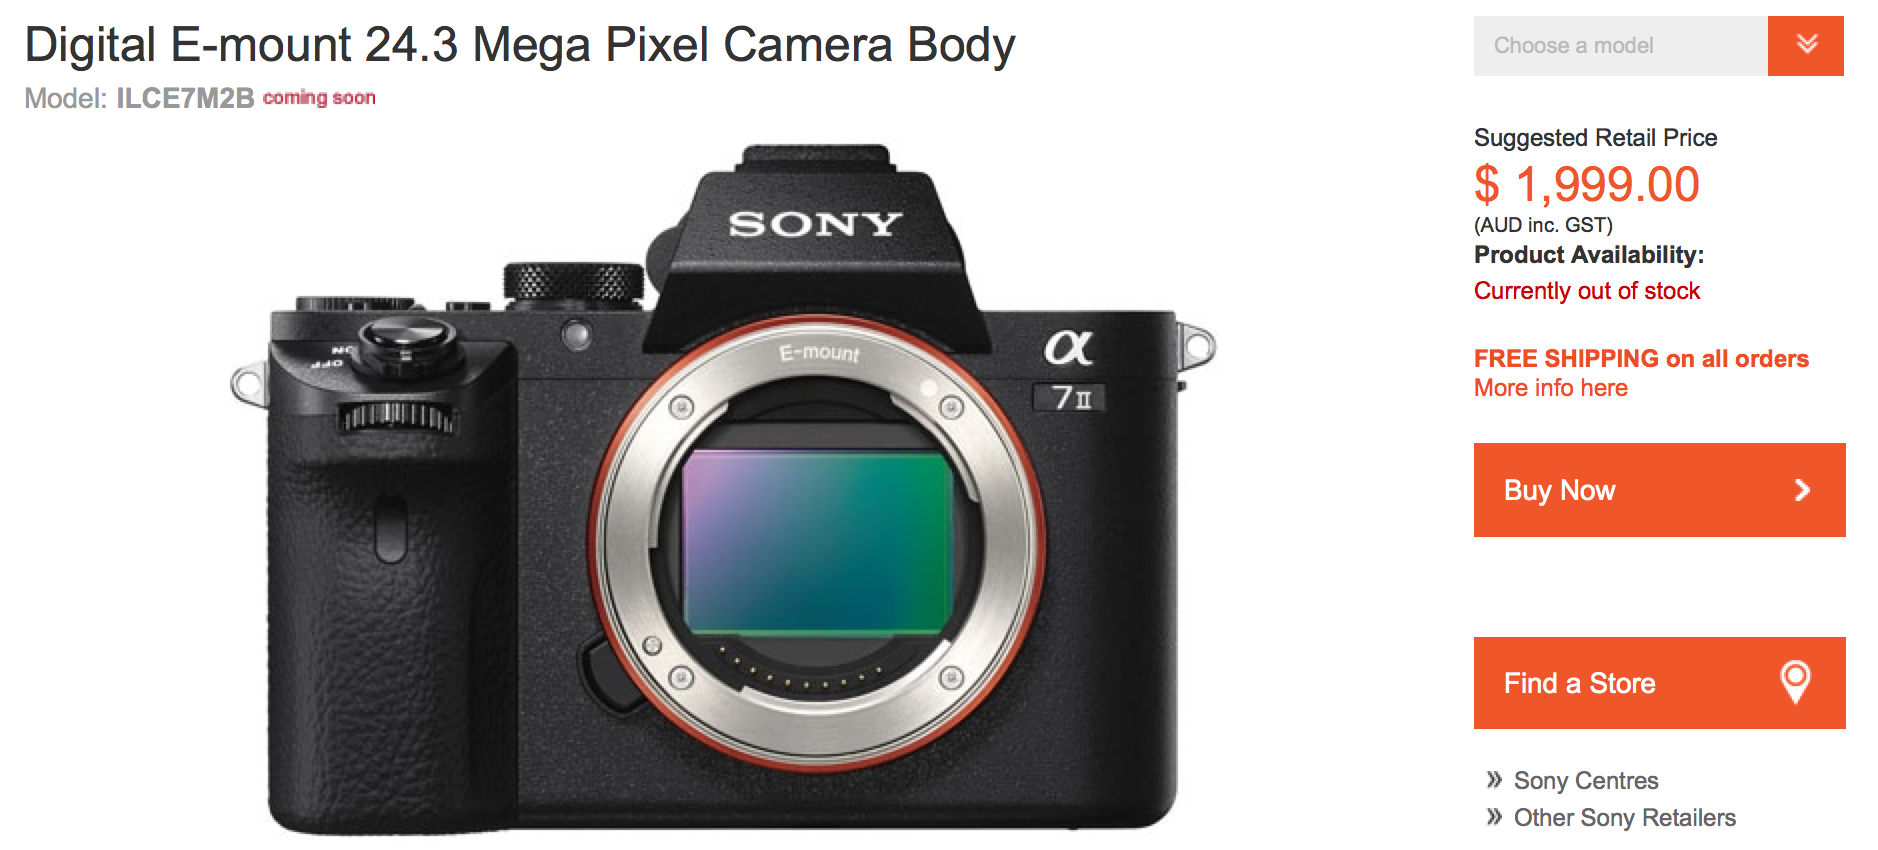 Cheapest NEX ever: Sony NEX-3n with lens for $298 at Amazon! - mirrorlessrumors